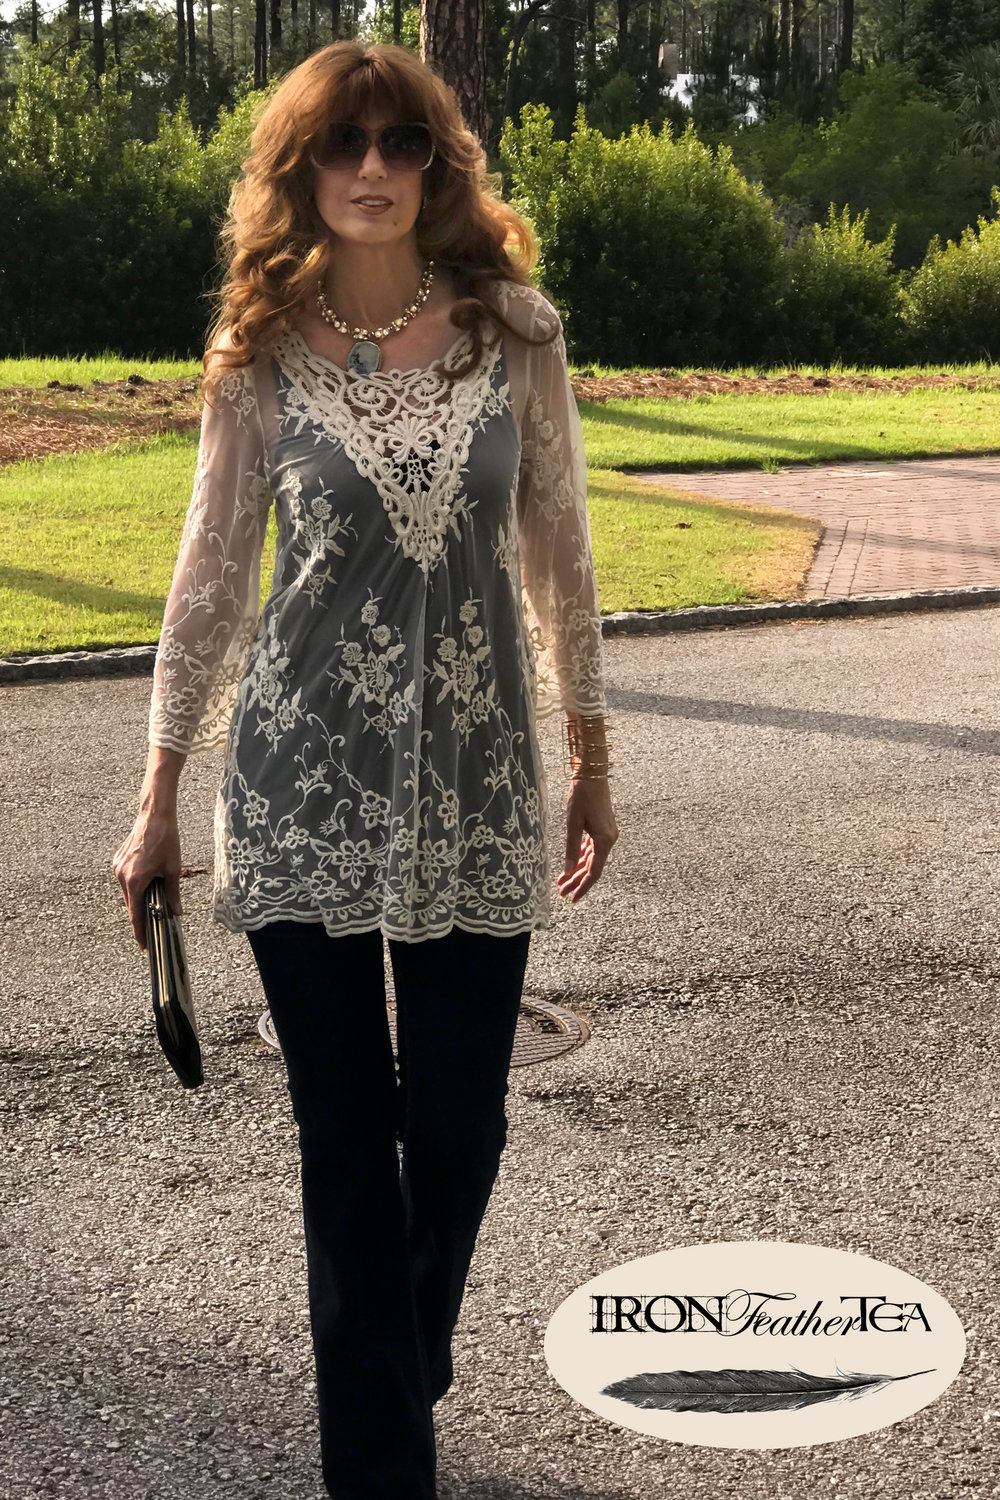 Delicate lace over a black tank top.